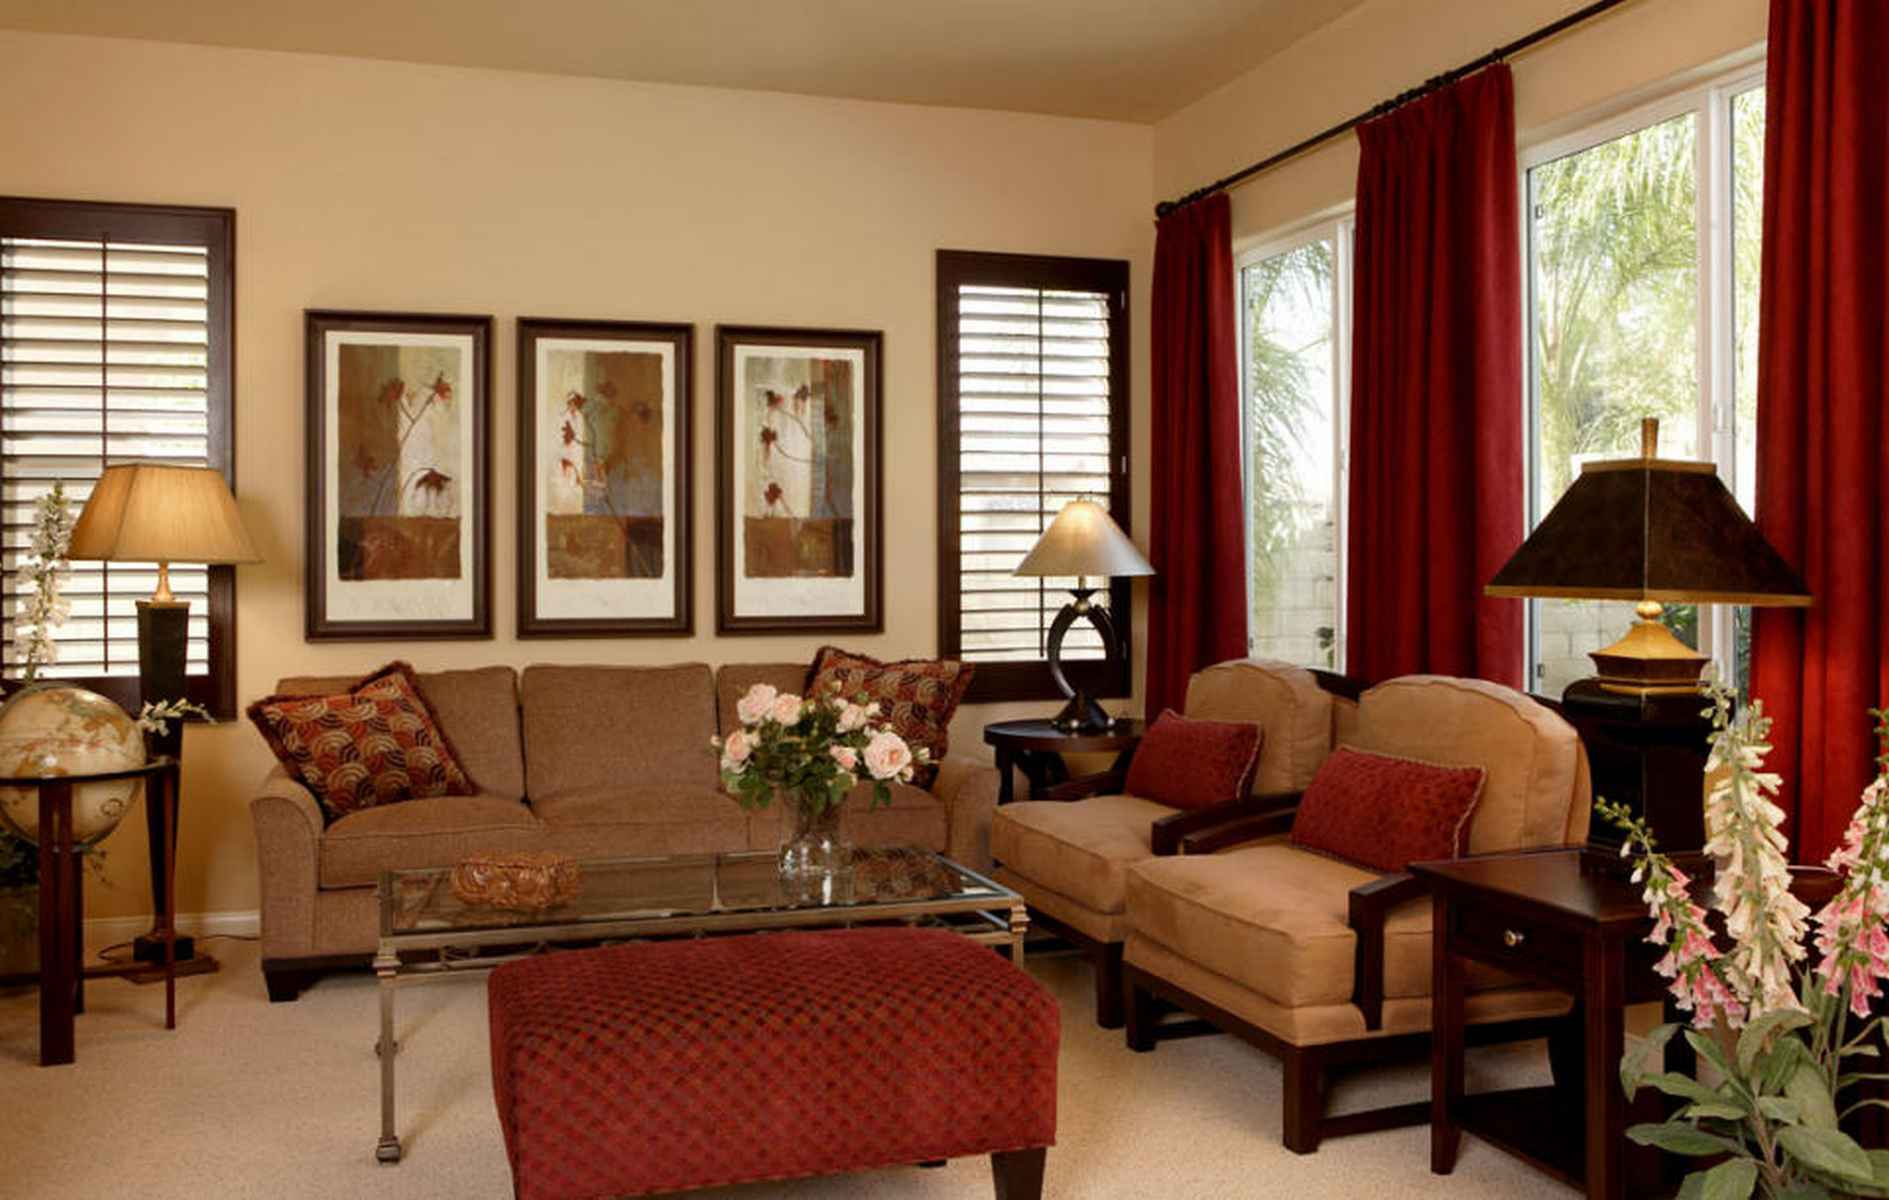 St. George's Day large living room interior with a red and brown colour scheme